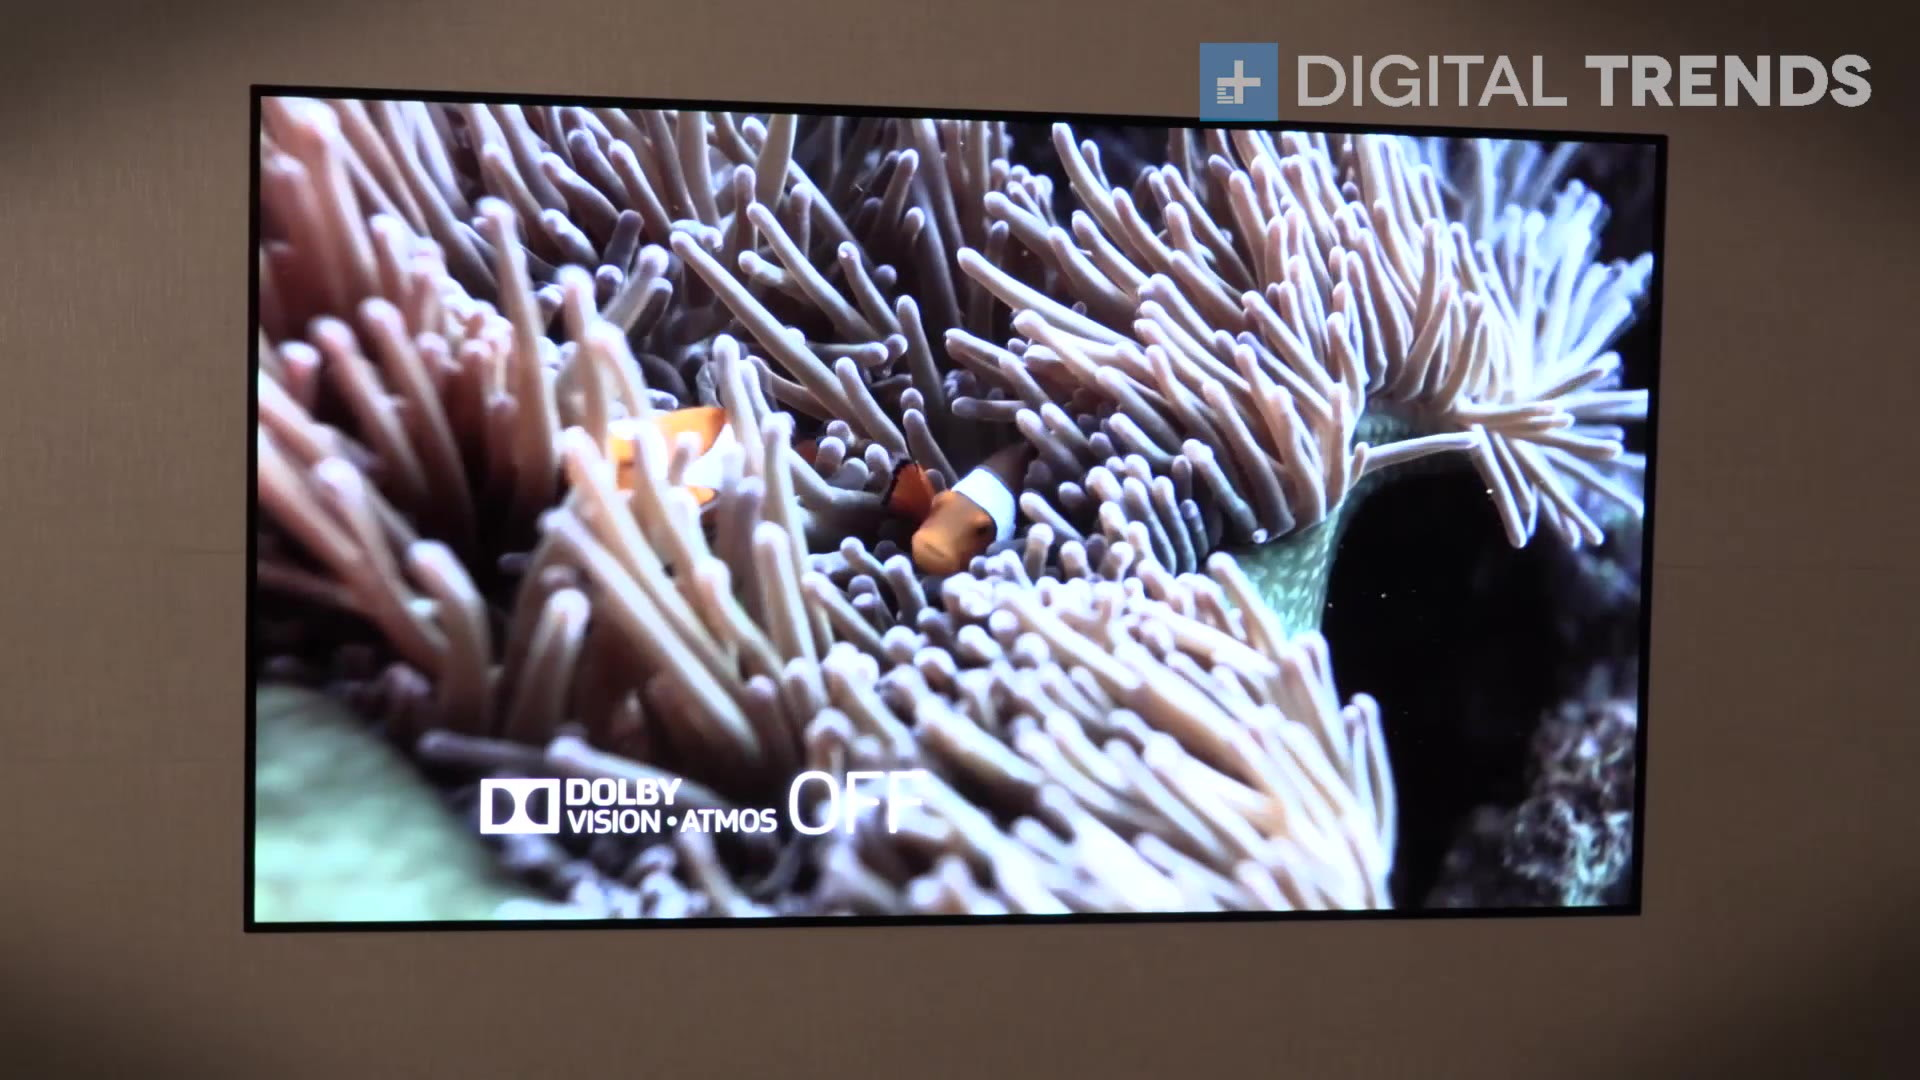 1920x1080 LG Wallpaper OLED TV Costs $8,000, Available For Pre-Order